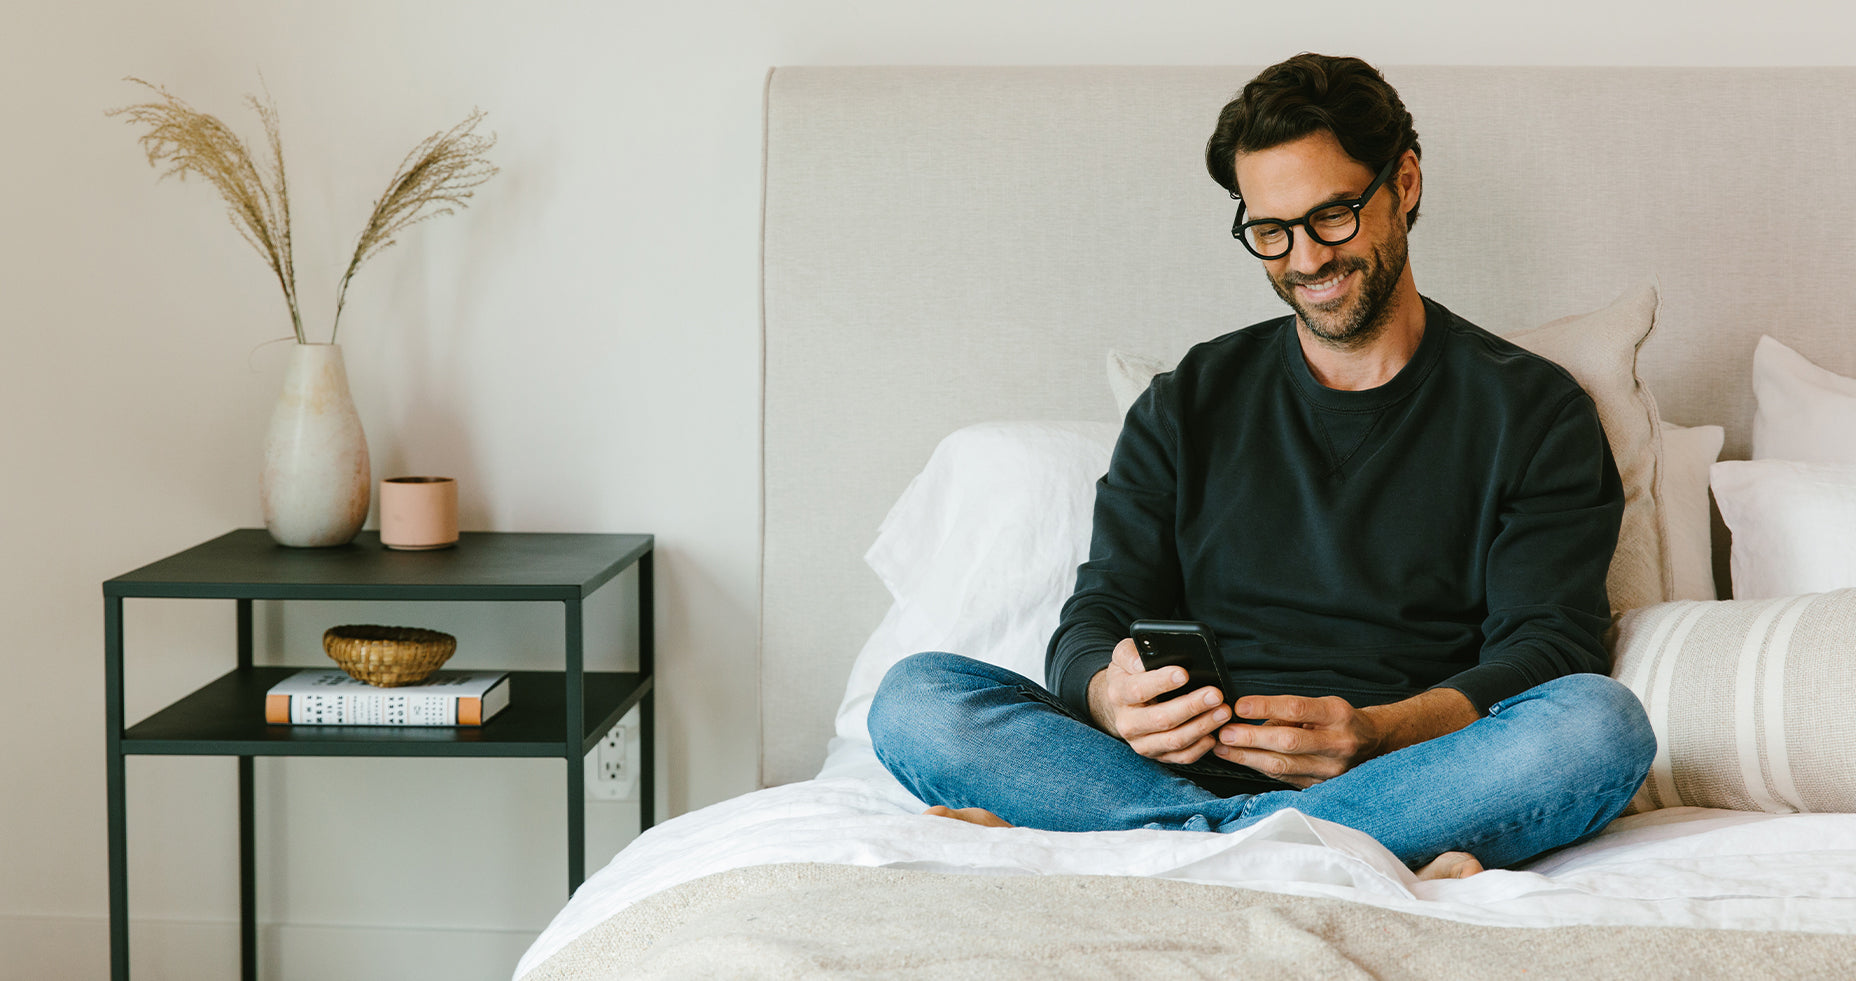 Man sitting on a bed looking at a phone